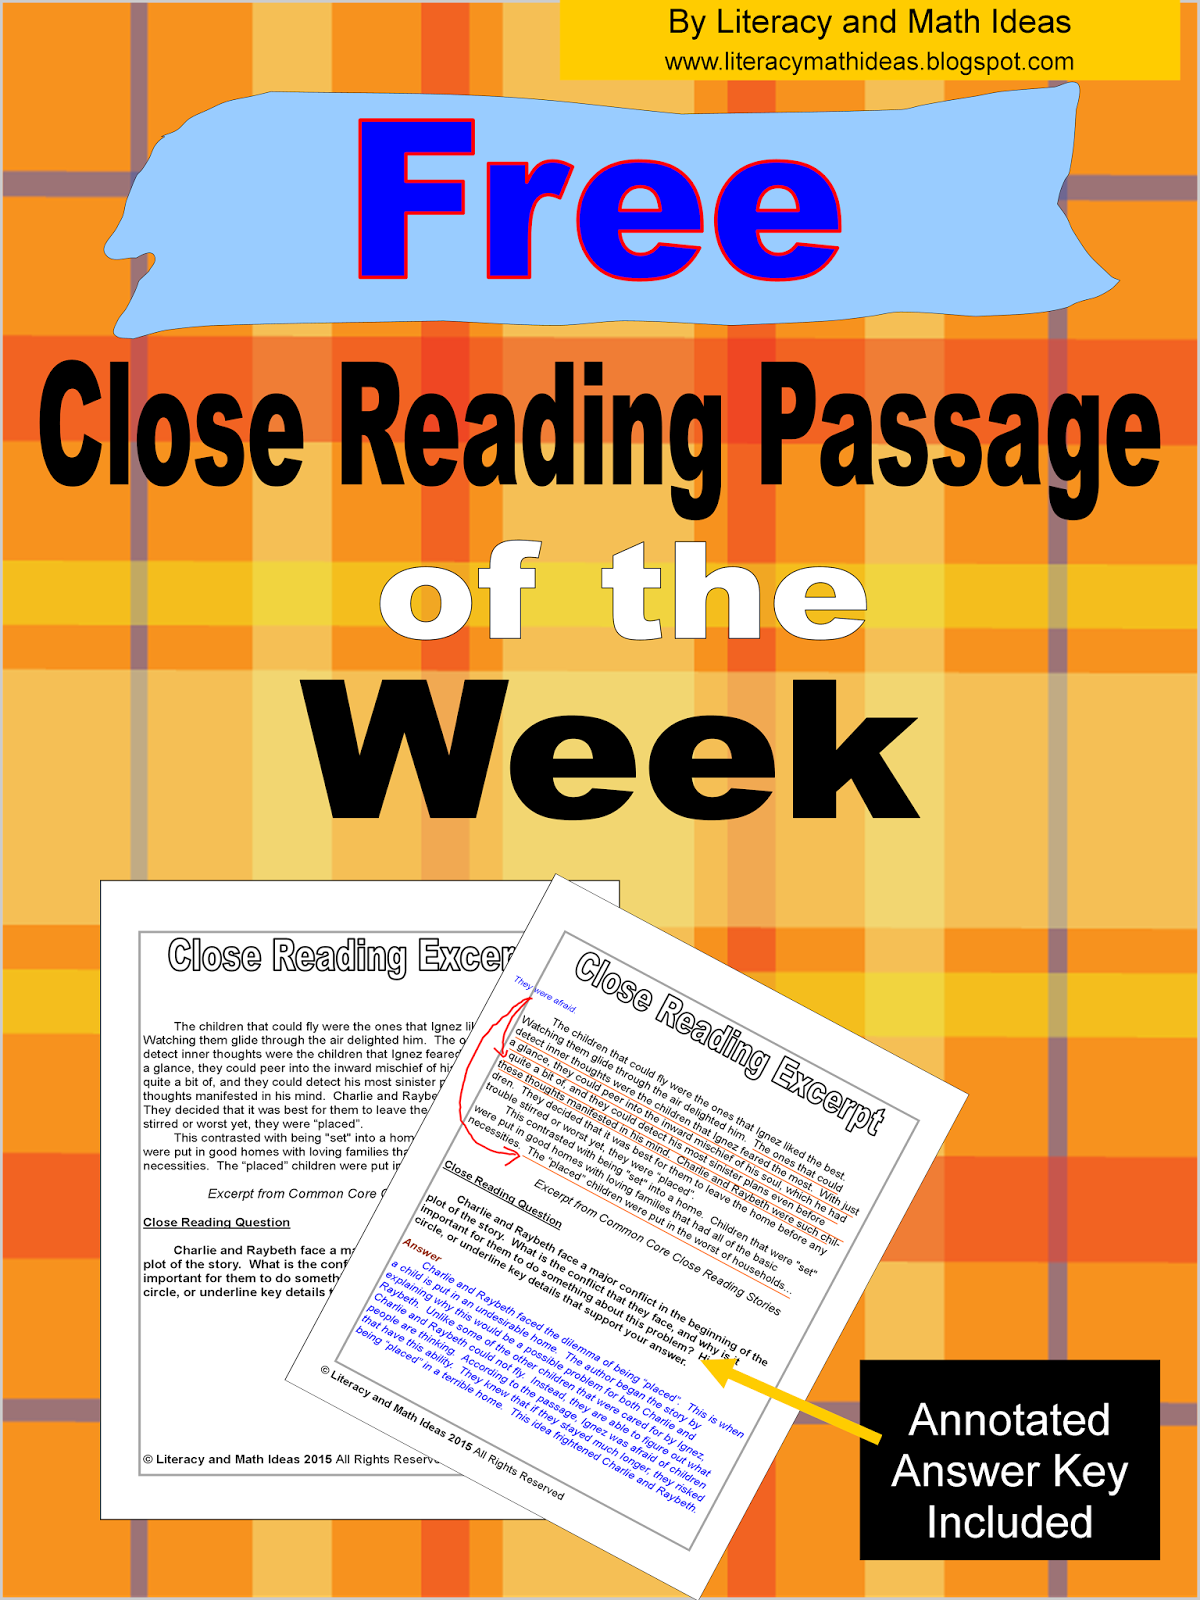 Free Close Reading Passage of the Week~An Annotated Key Is